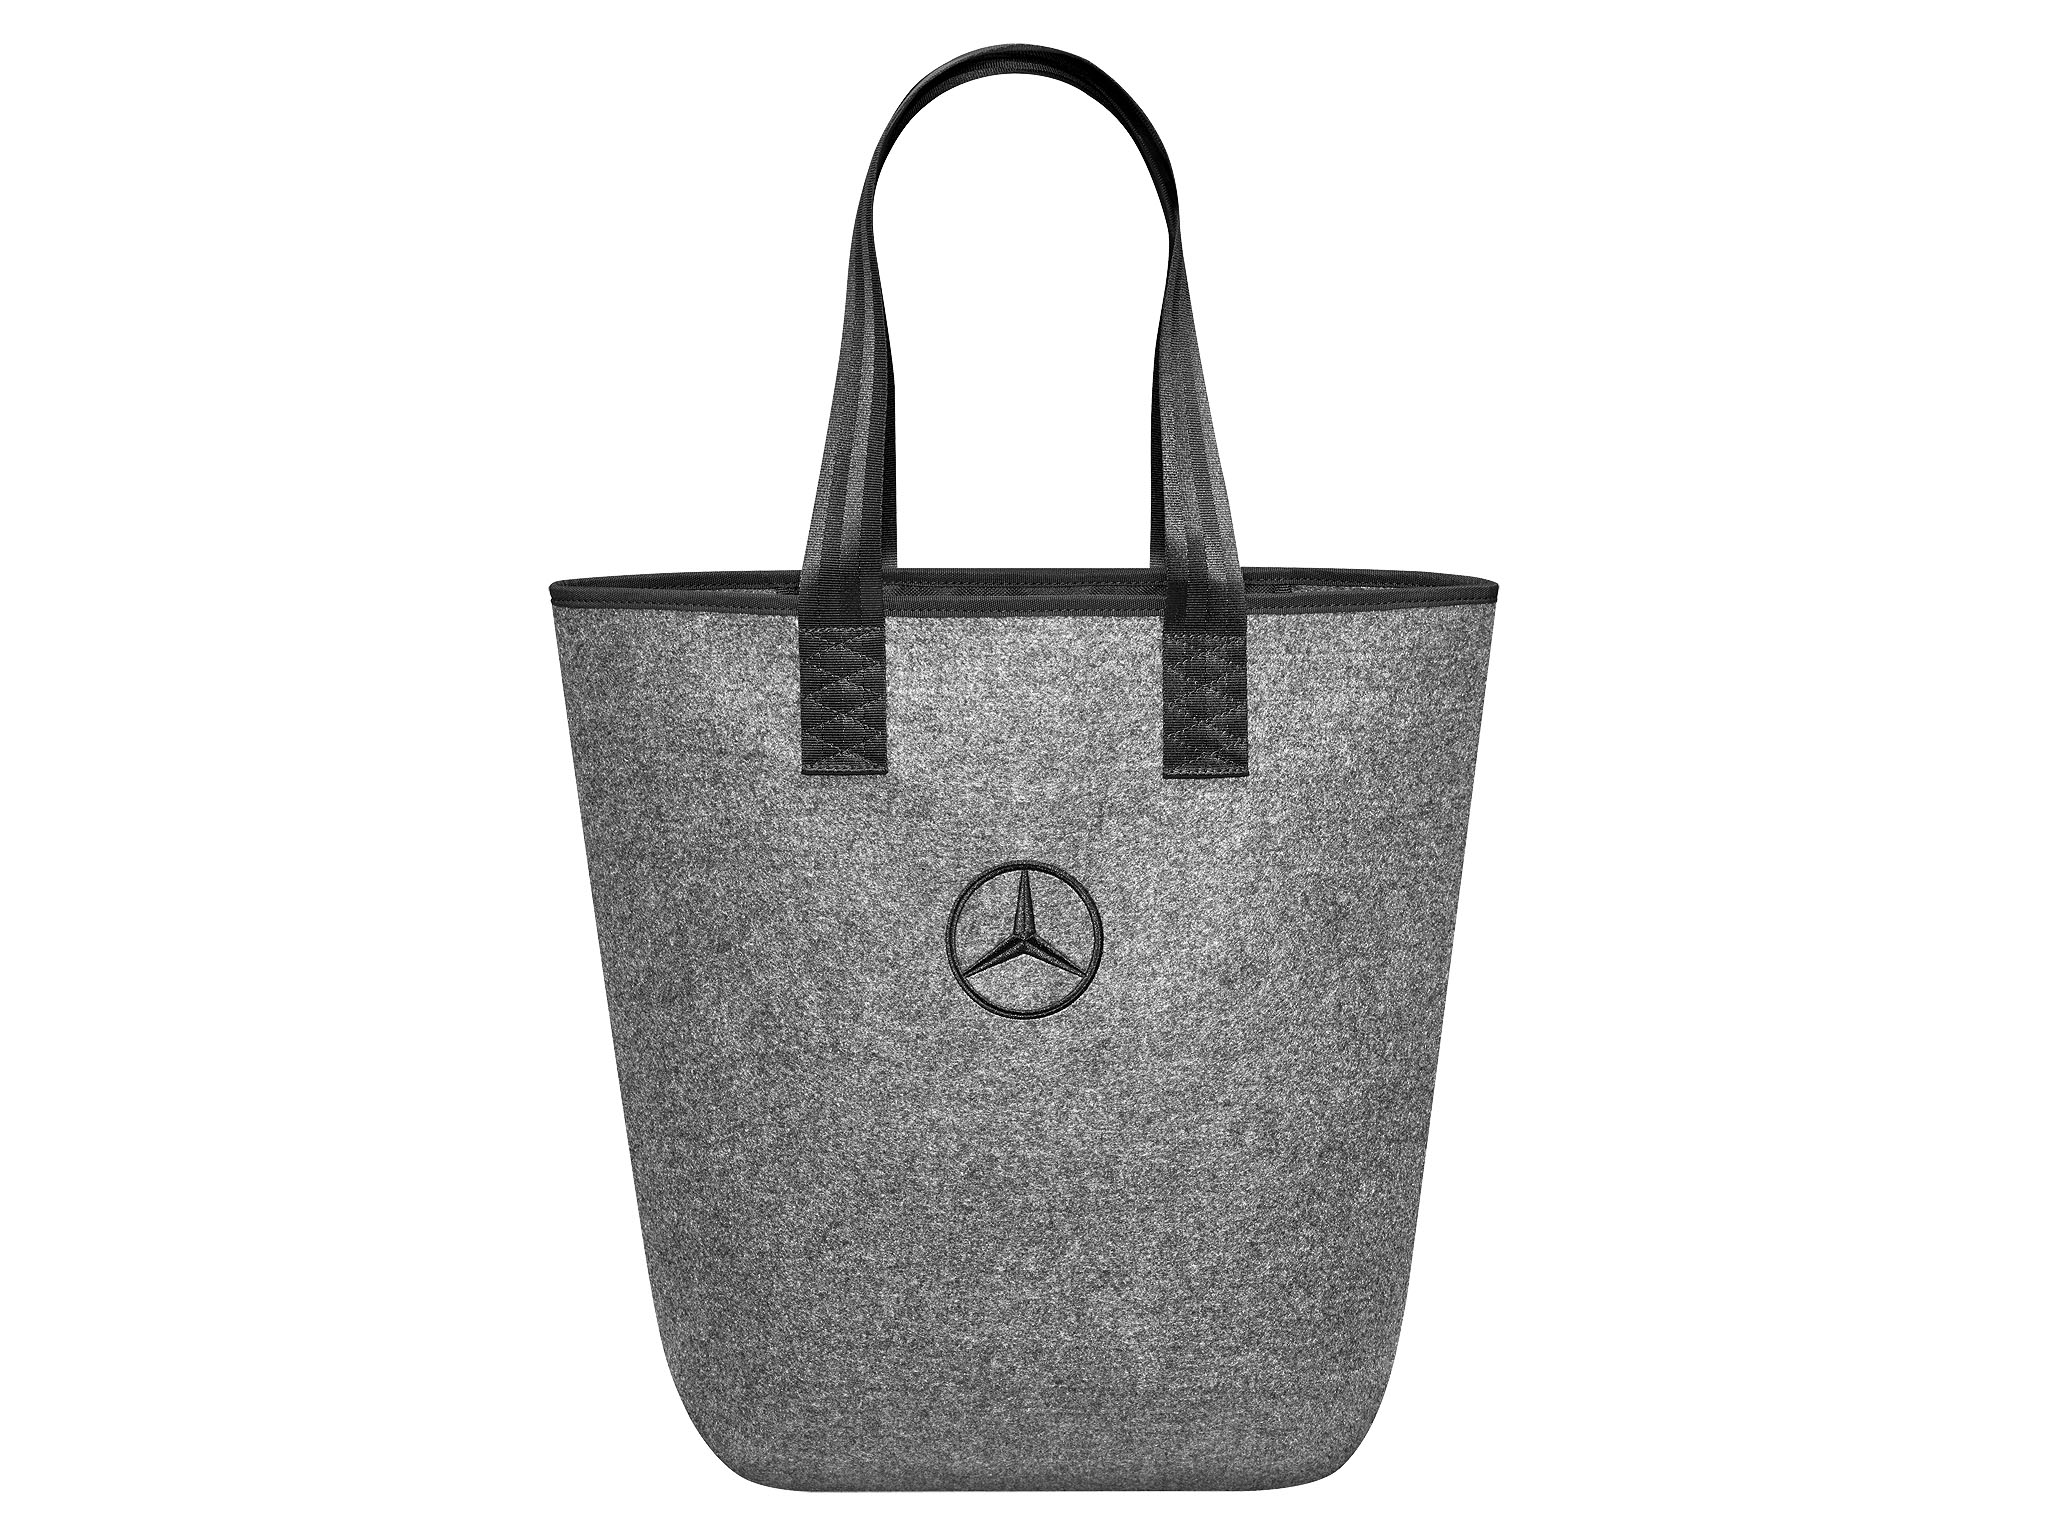 7b233876ae1 Handtassen en Lederwaren - Onderweg - Dames - Mercedes-Benz Official ...